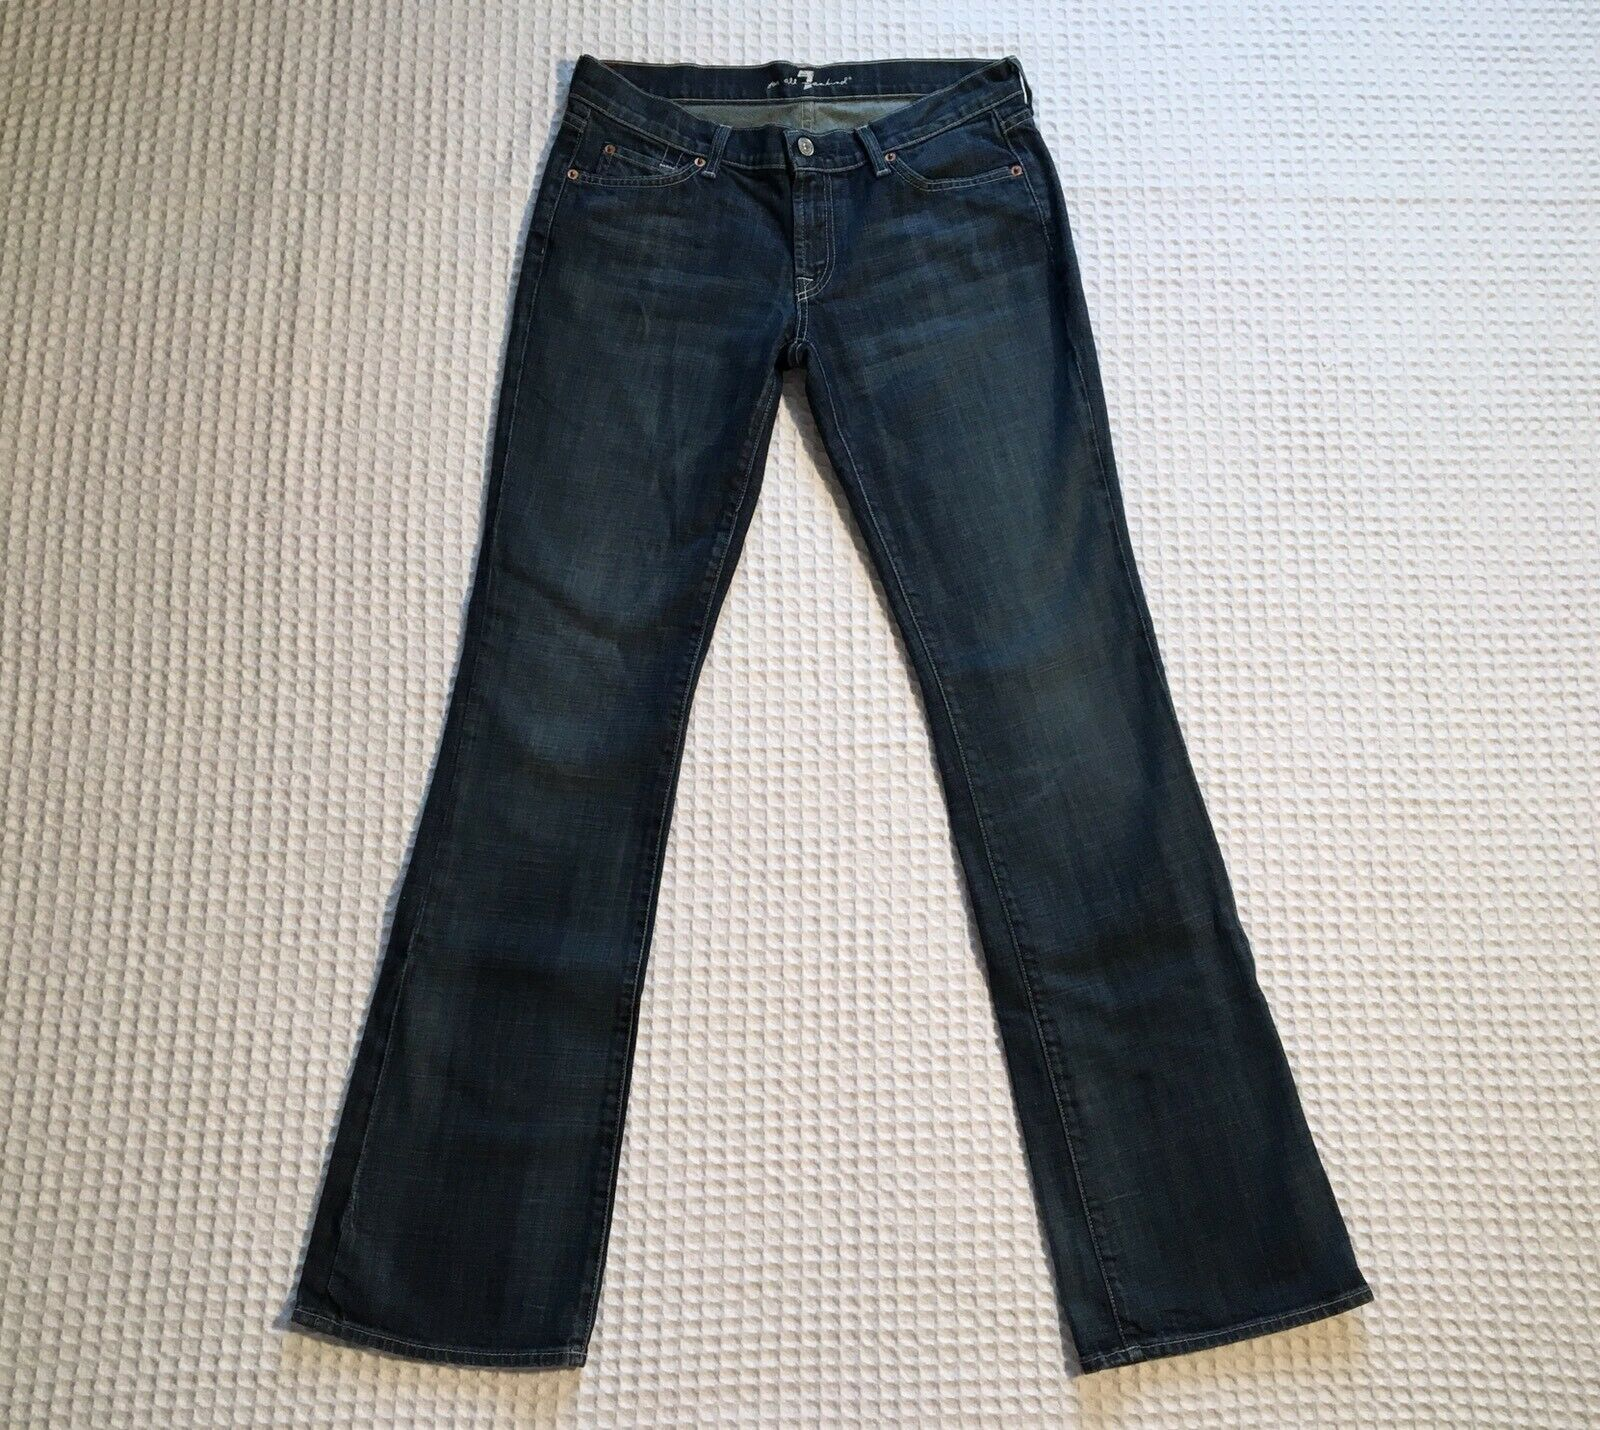 7 SEVEN For ALL MANKIND Bootcut Boot Cut Jeans 30